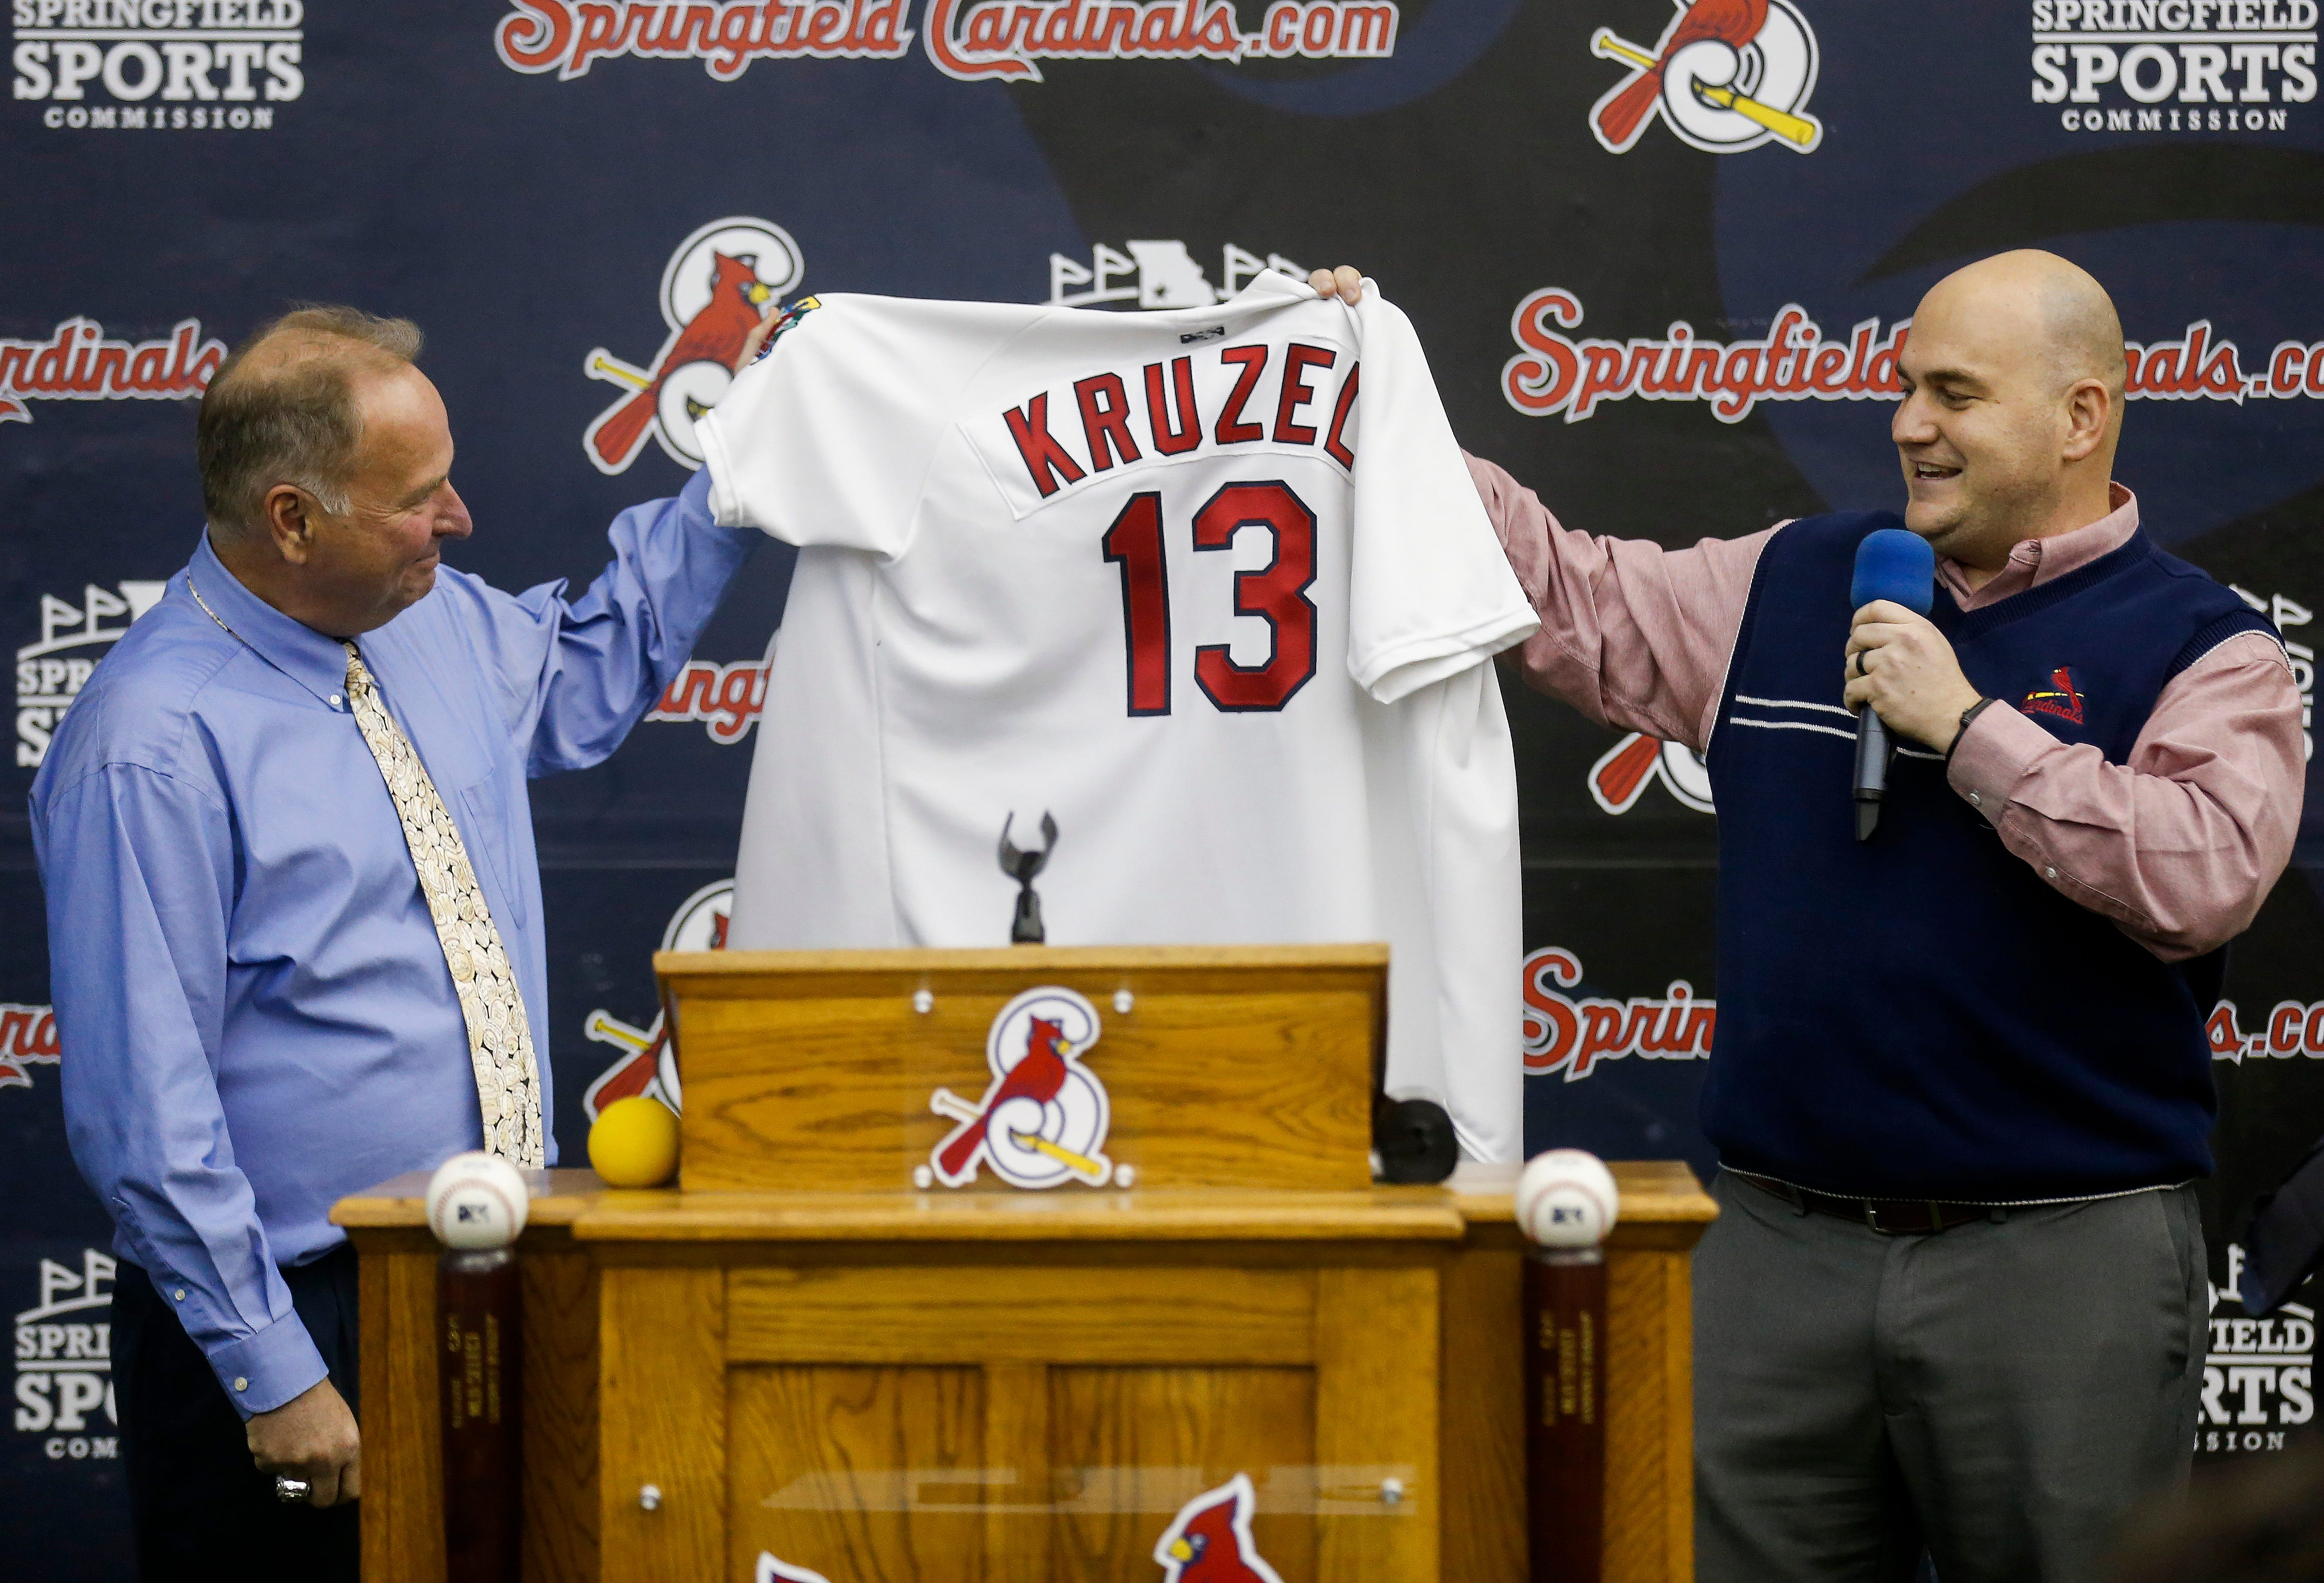 Springfield Cardinals Vice President and General Manager Dan Reiter, right, presents new Cardinals Manager Joe Kruzel with his new jersey on Thursday, Feb. 7, 2019.